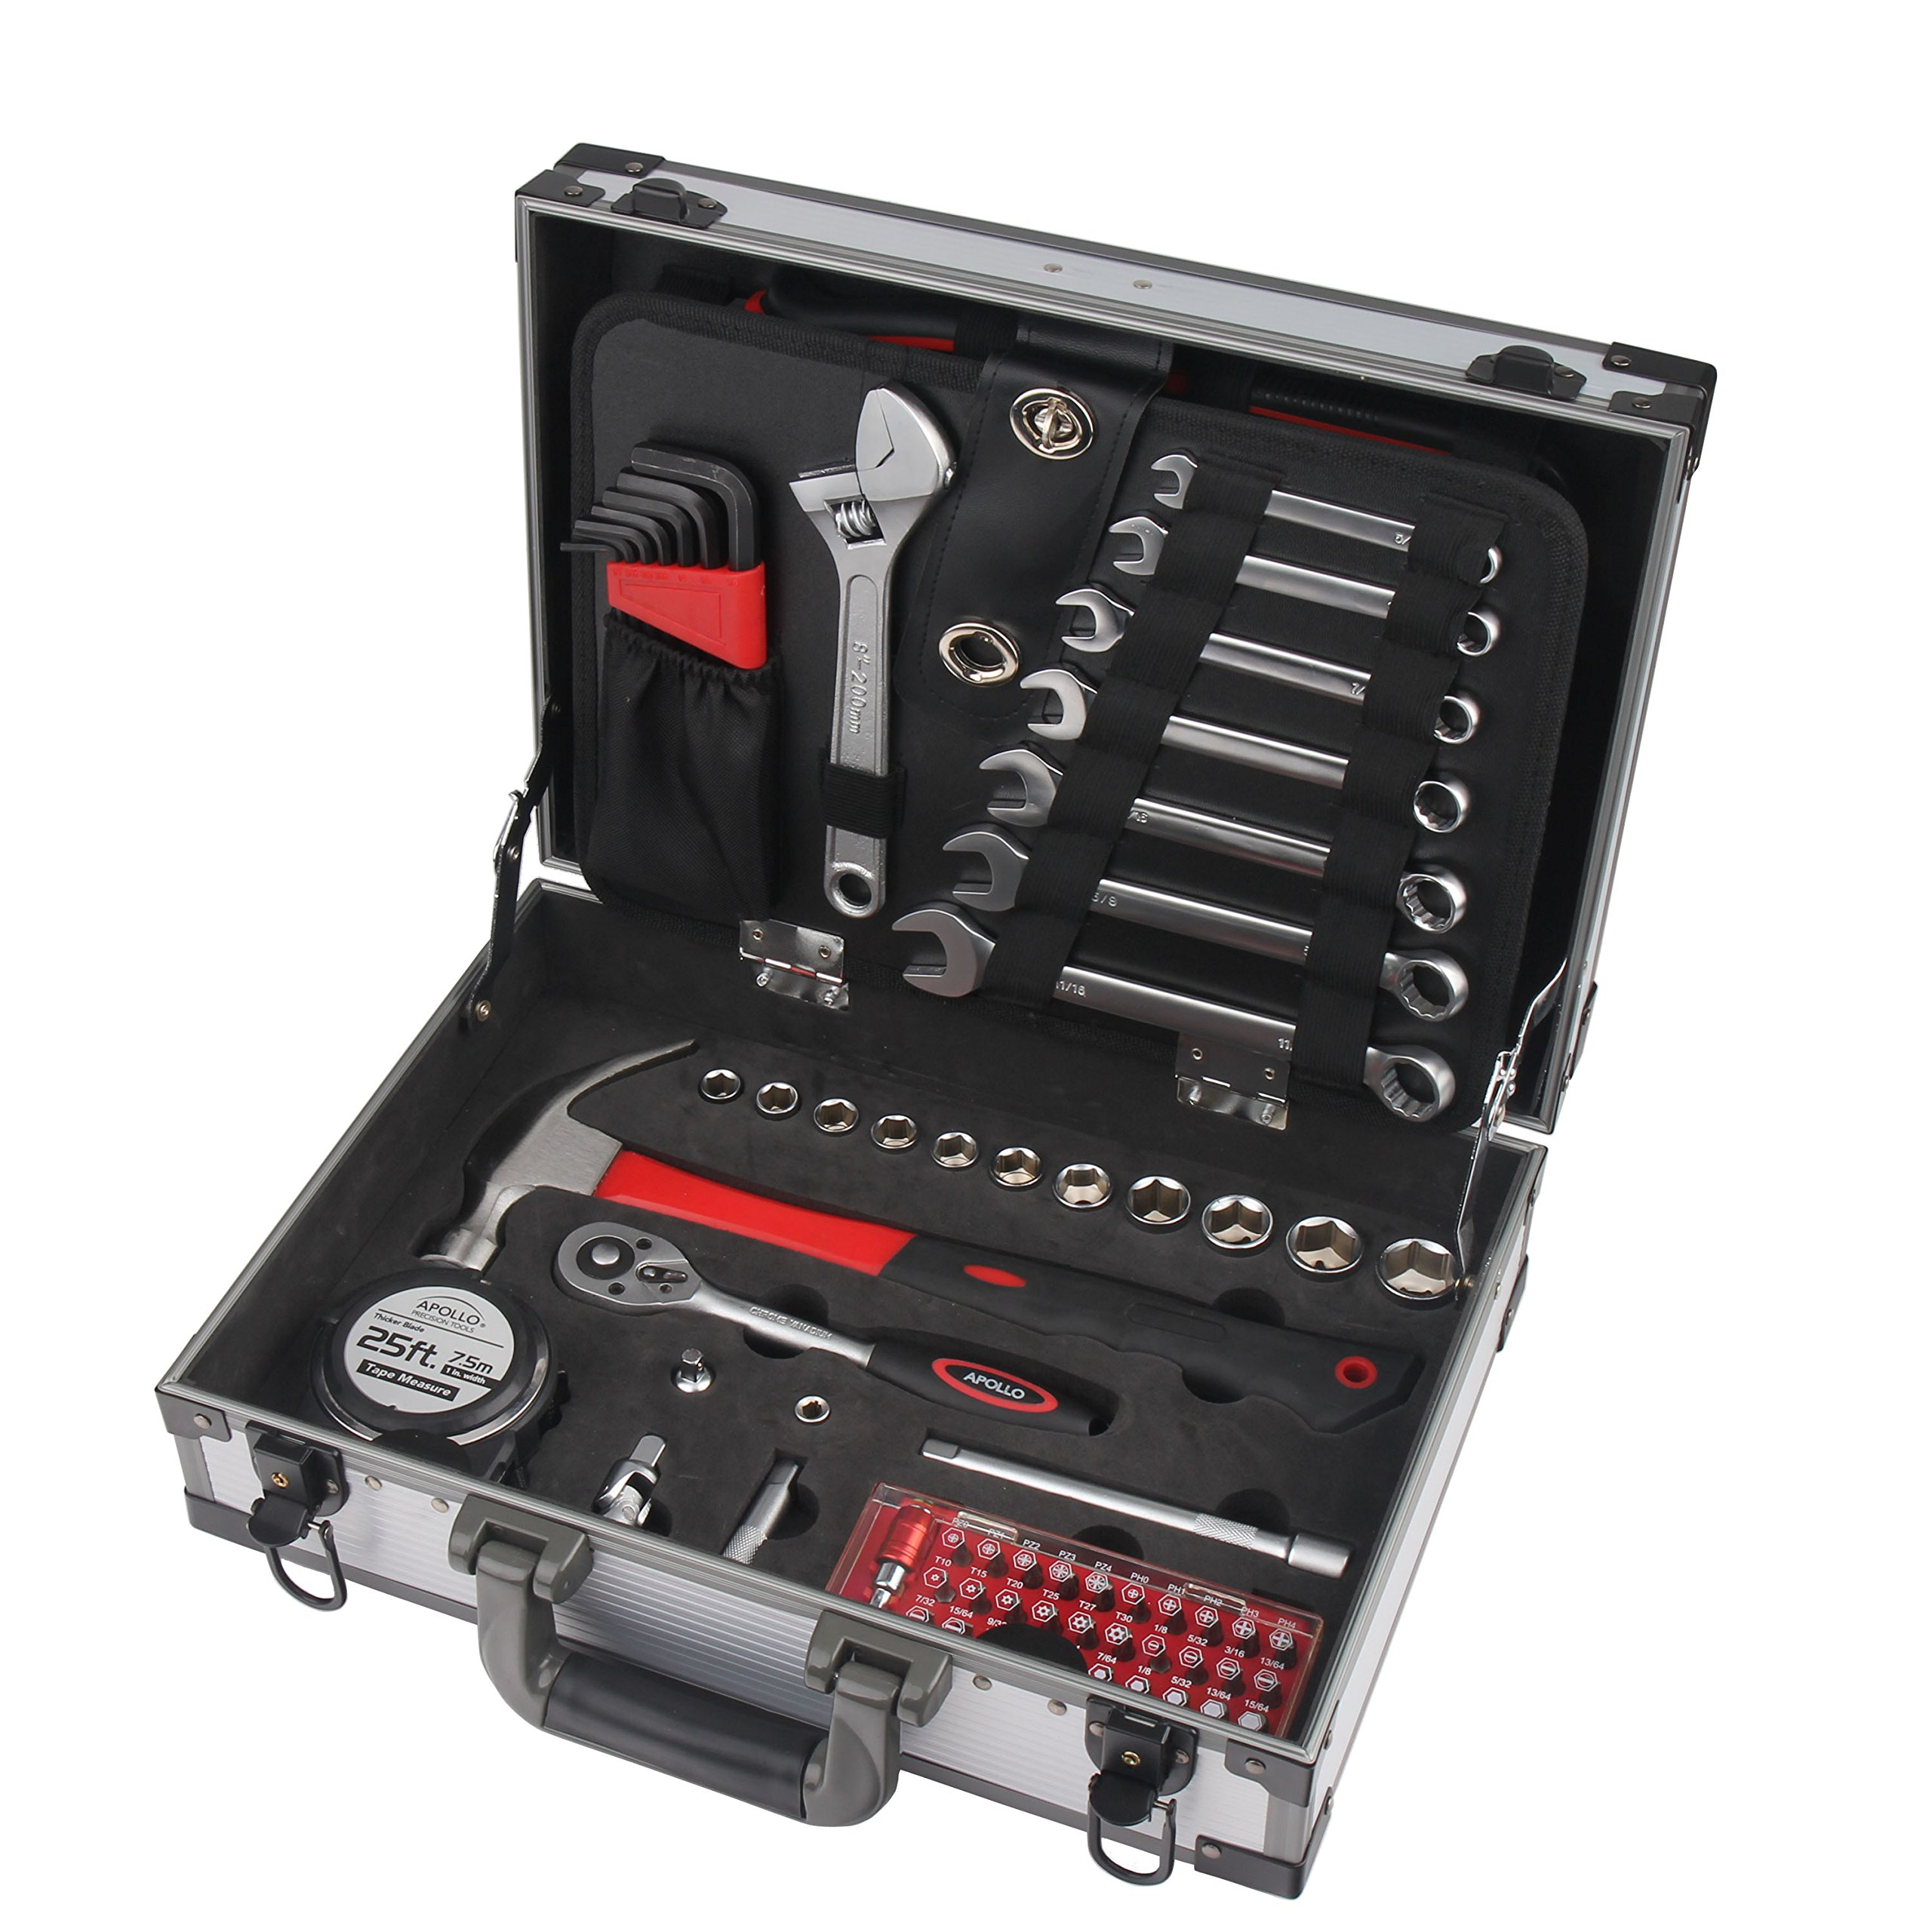 Apollo Tools DT4935 91 Piece High-Grade Chrome Vanadium Cr-v Steel General Tool Set with Sockets, Wrenches, Pliers, Hammer, Most-Reached for Repair Tools, in a Strong Aluminum Storage Case